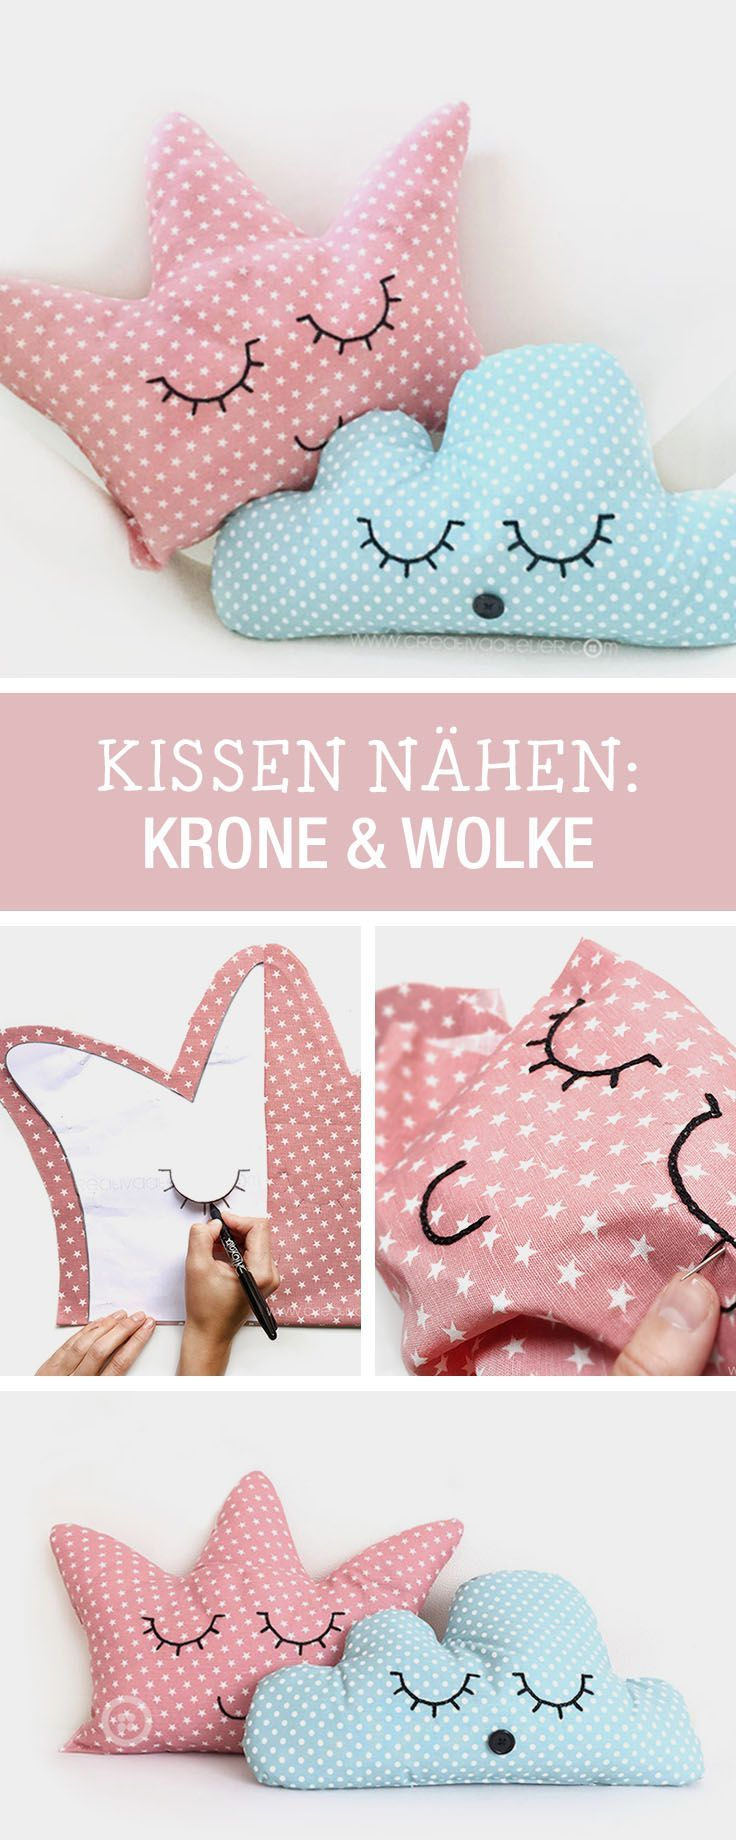 DIY-Anleitung: Kissen als Krone und Wolke für kleine Prinzessinnen nähen, Kinderzimmerdeko / DIY tutorial: sewing pillow as crown and cloud for little princesses, children's room decor via DaWanda.com #childroom